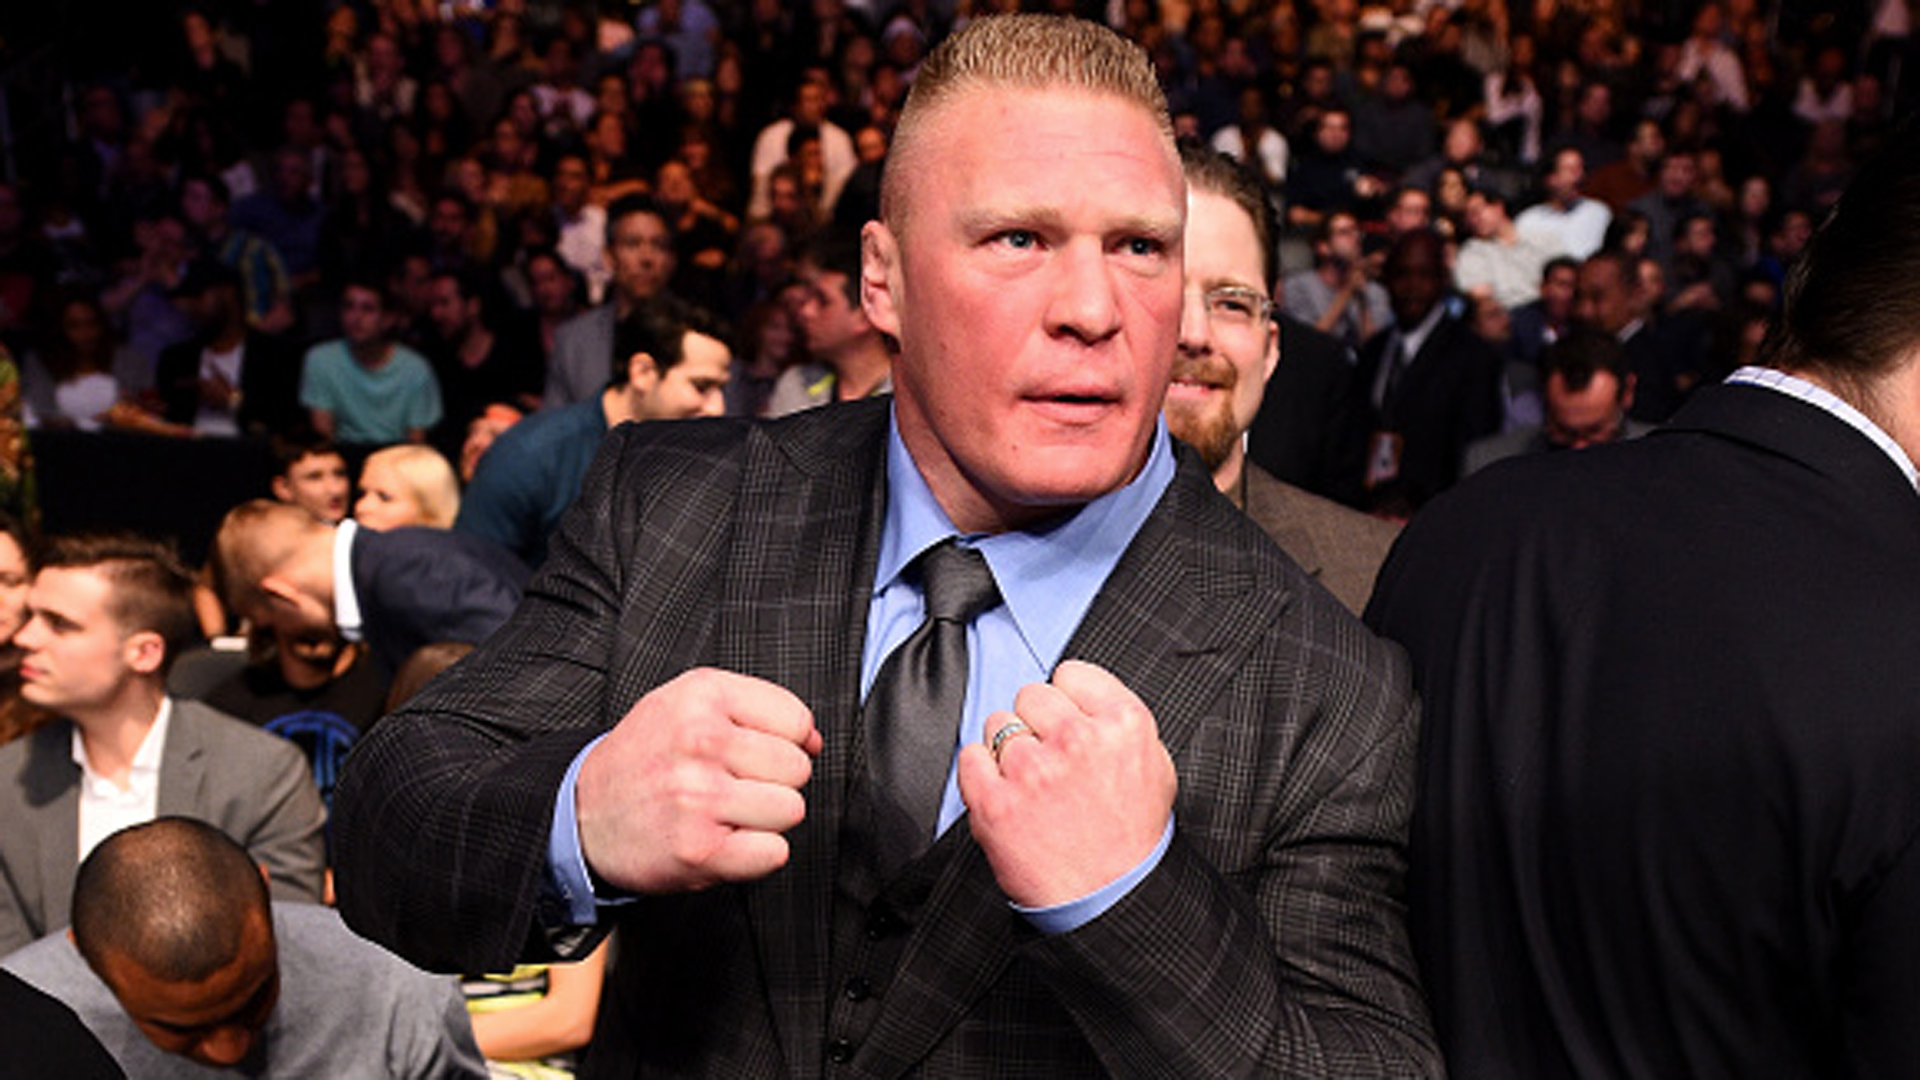 WWE's Brock Lesnar to fight at UFC 200